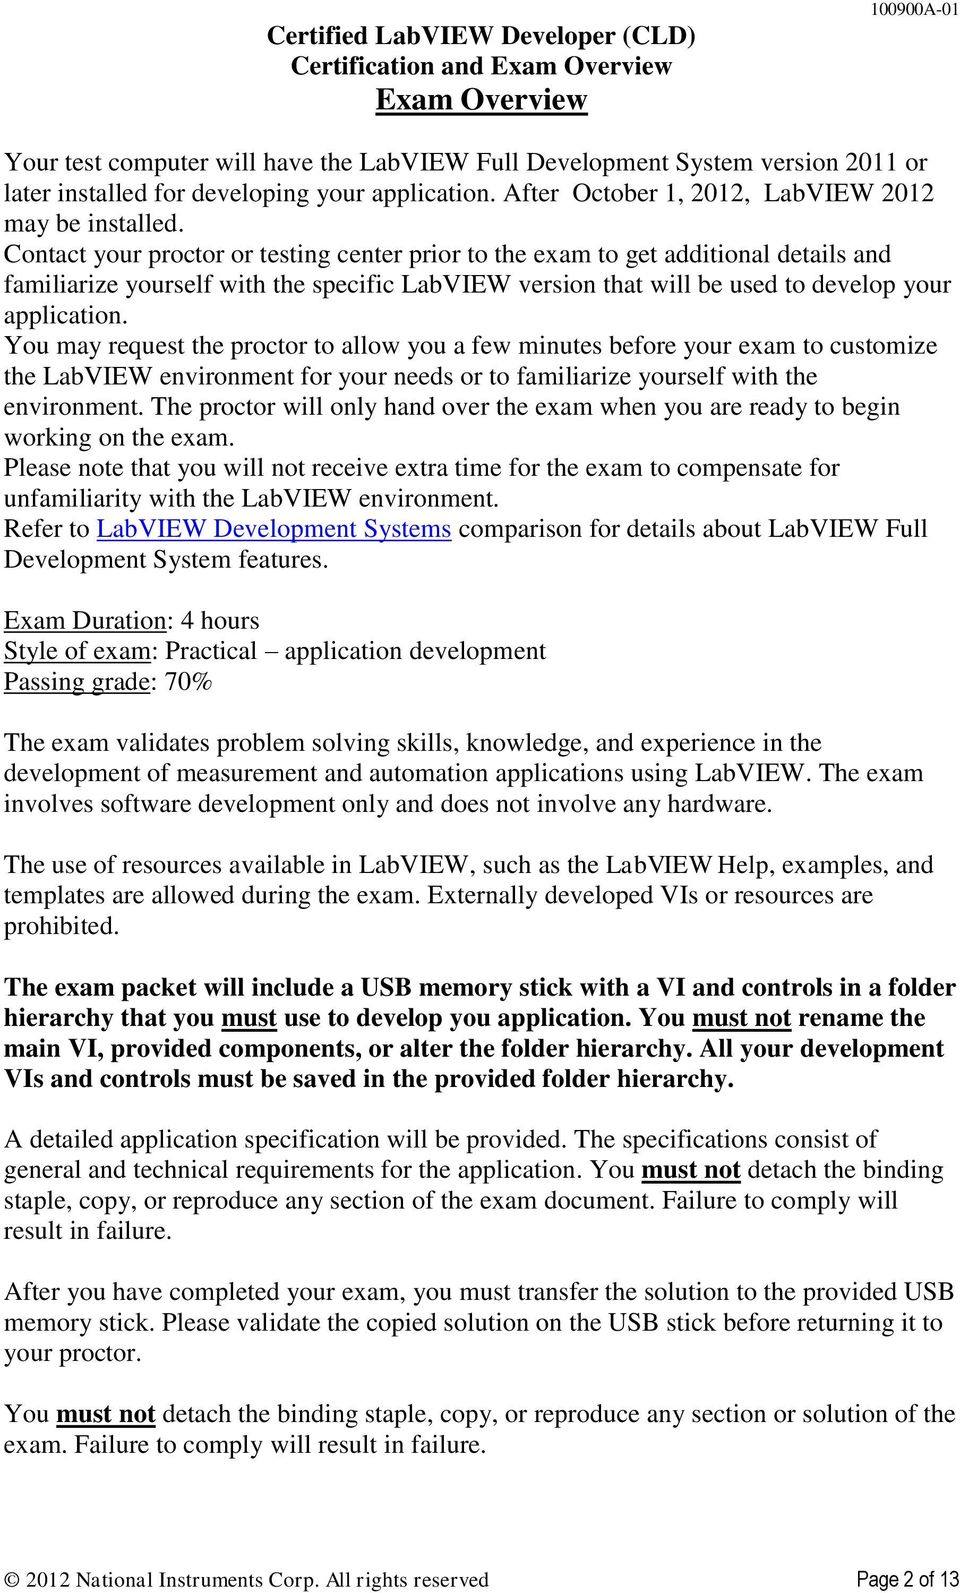 Certified Labview Developer Cld Certification And Exam Overview Pdf